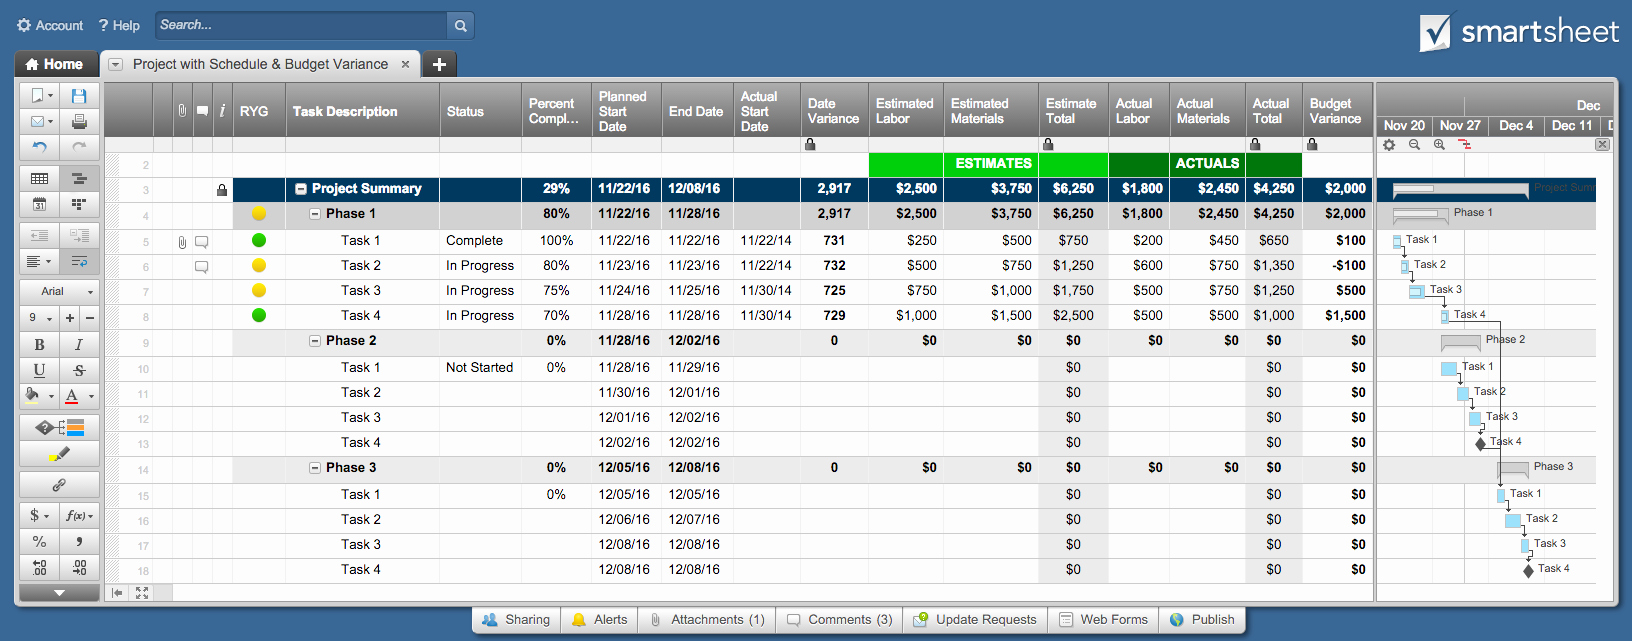 Excel Project Management Templates Free Luxury Free Excel Project Management Templates